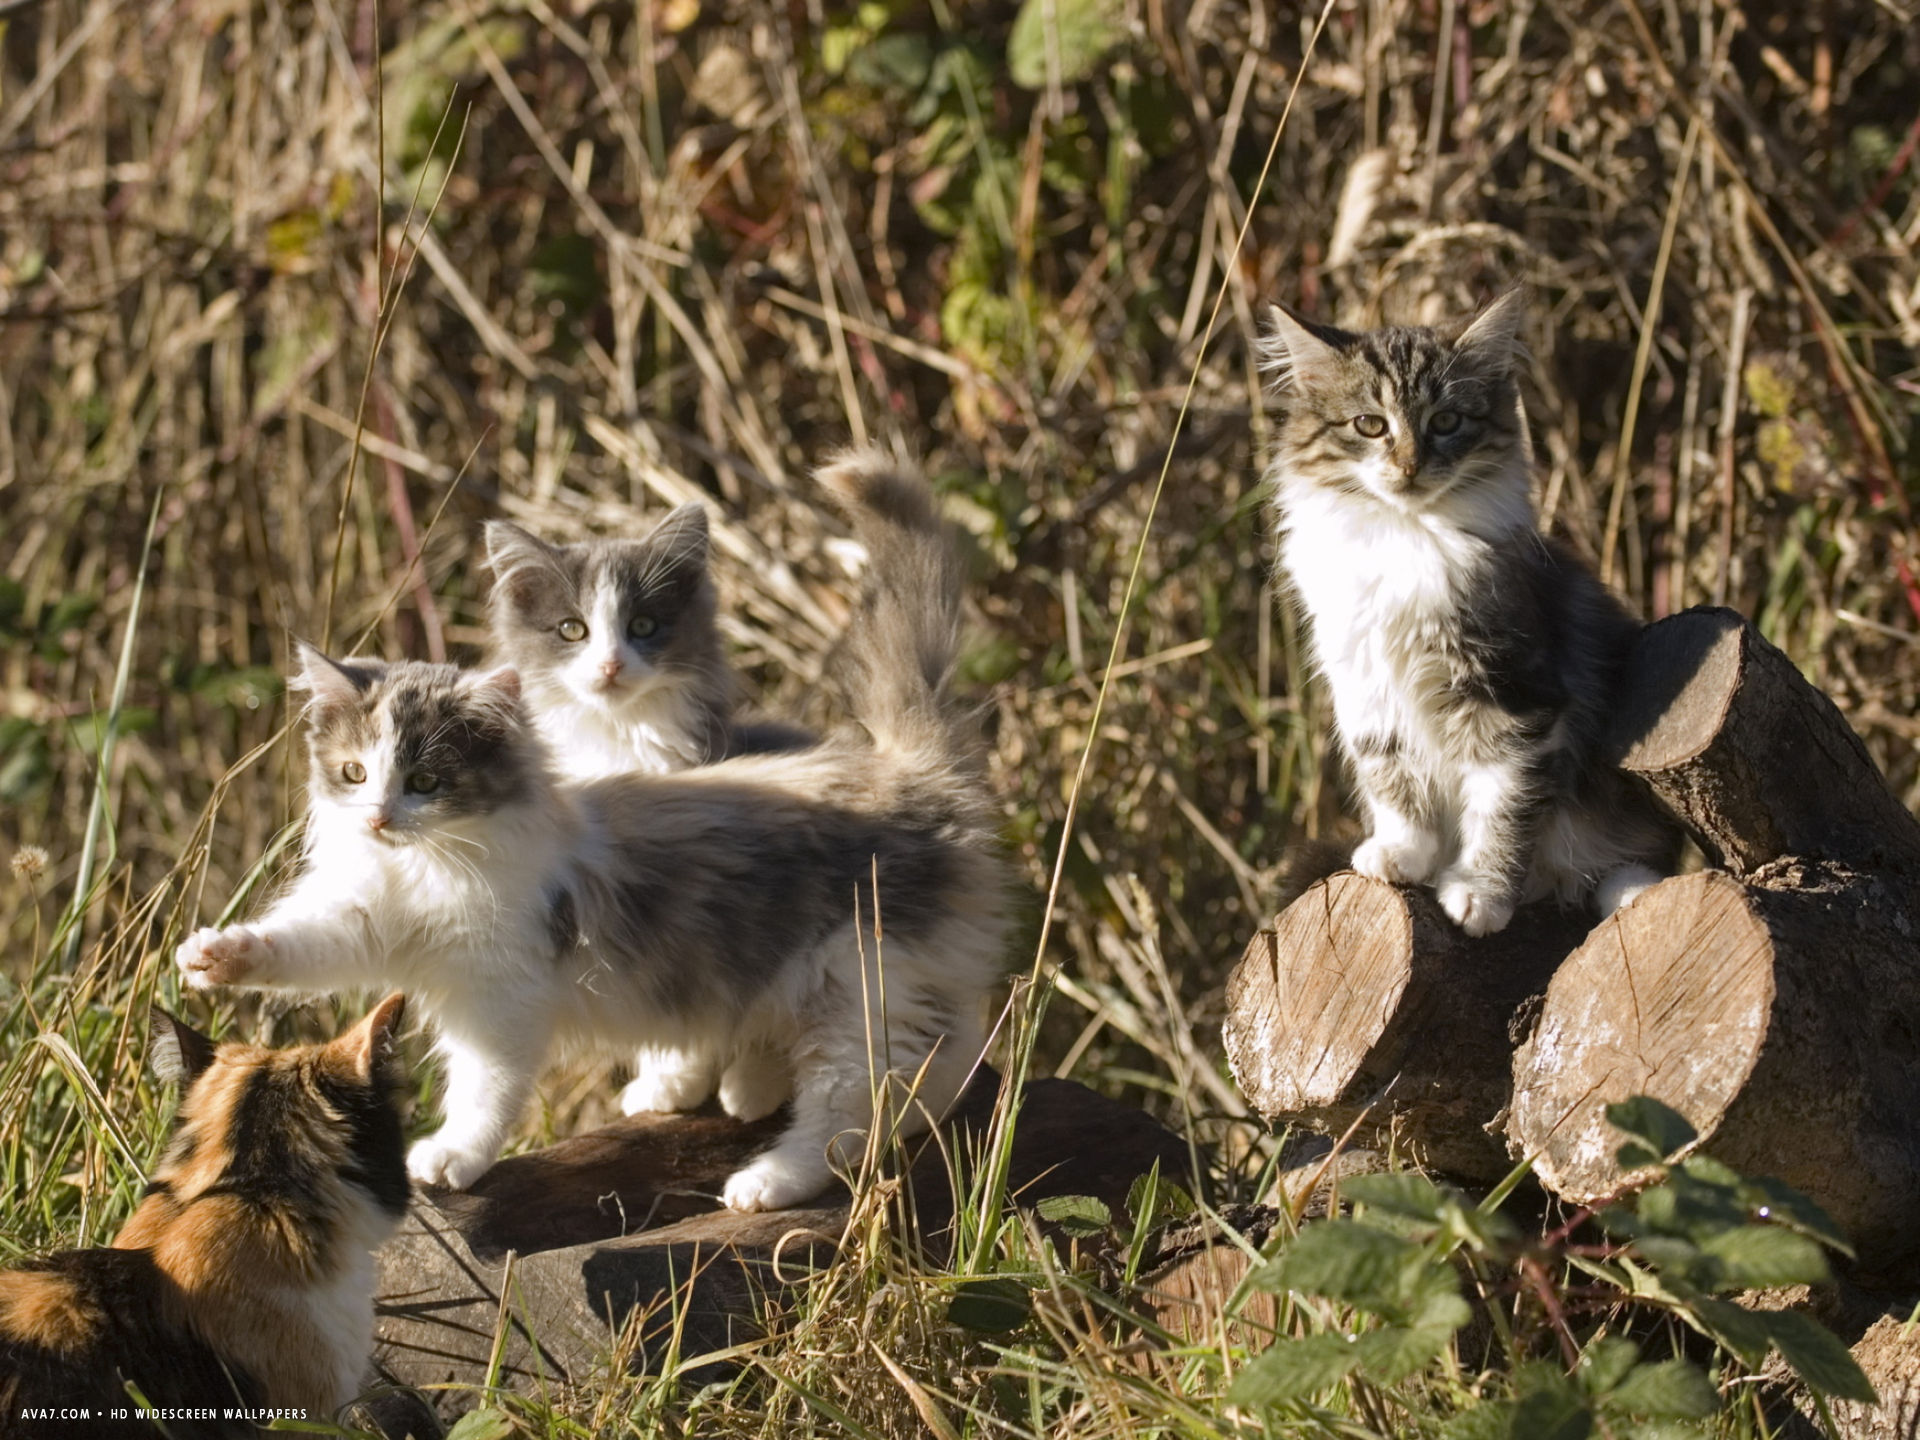 kittens playing in sebastapol california